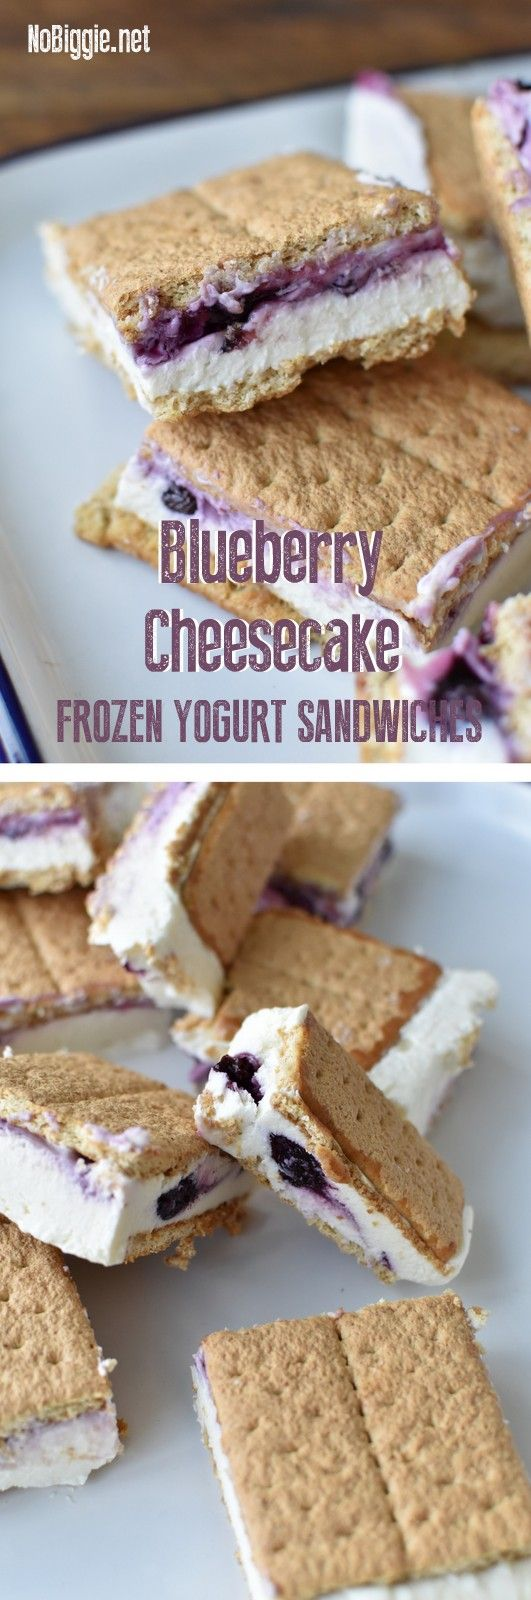 Blueberry Cheesecake Frozen Yogurt Sandwiches